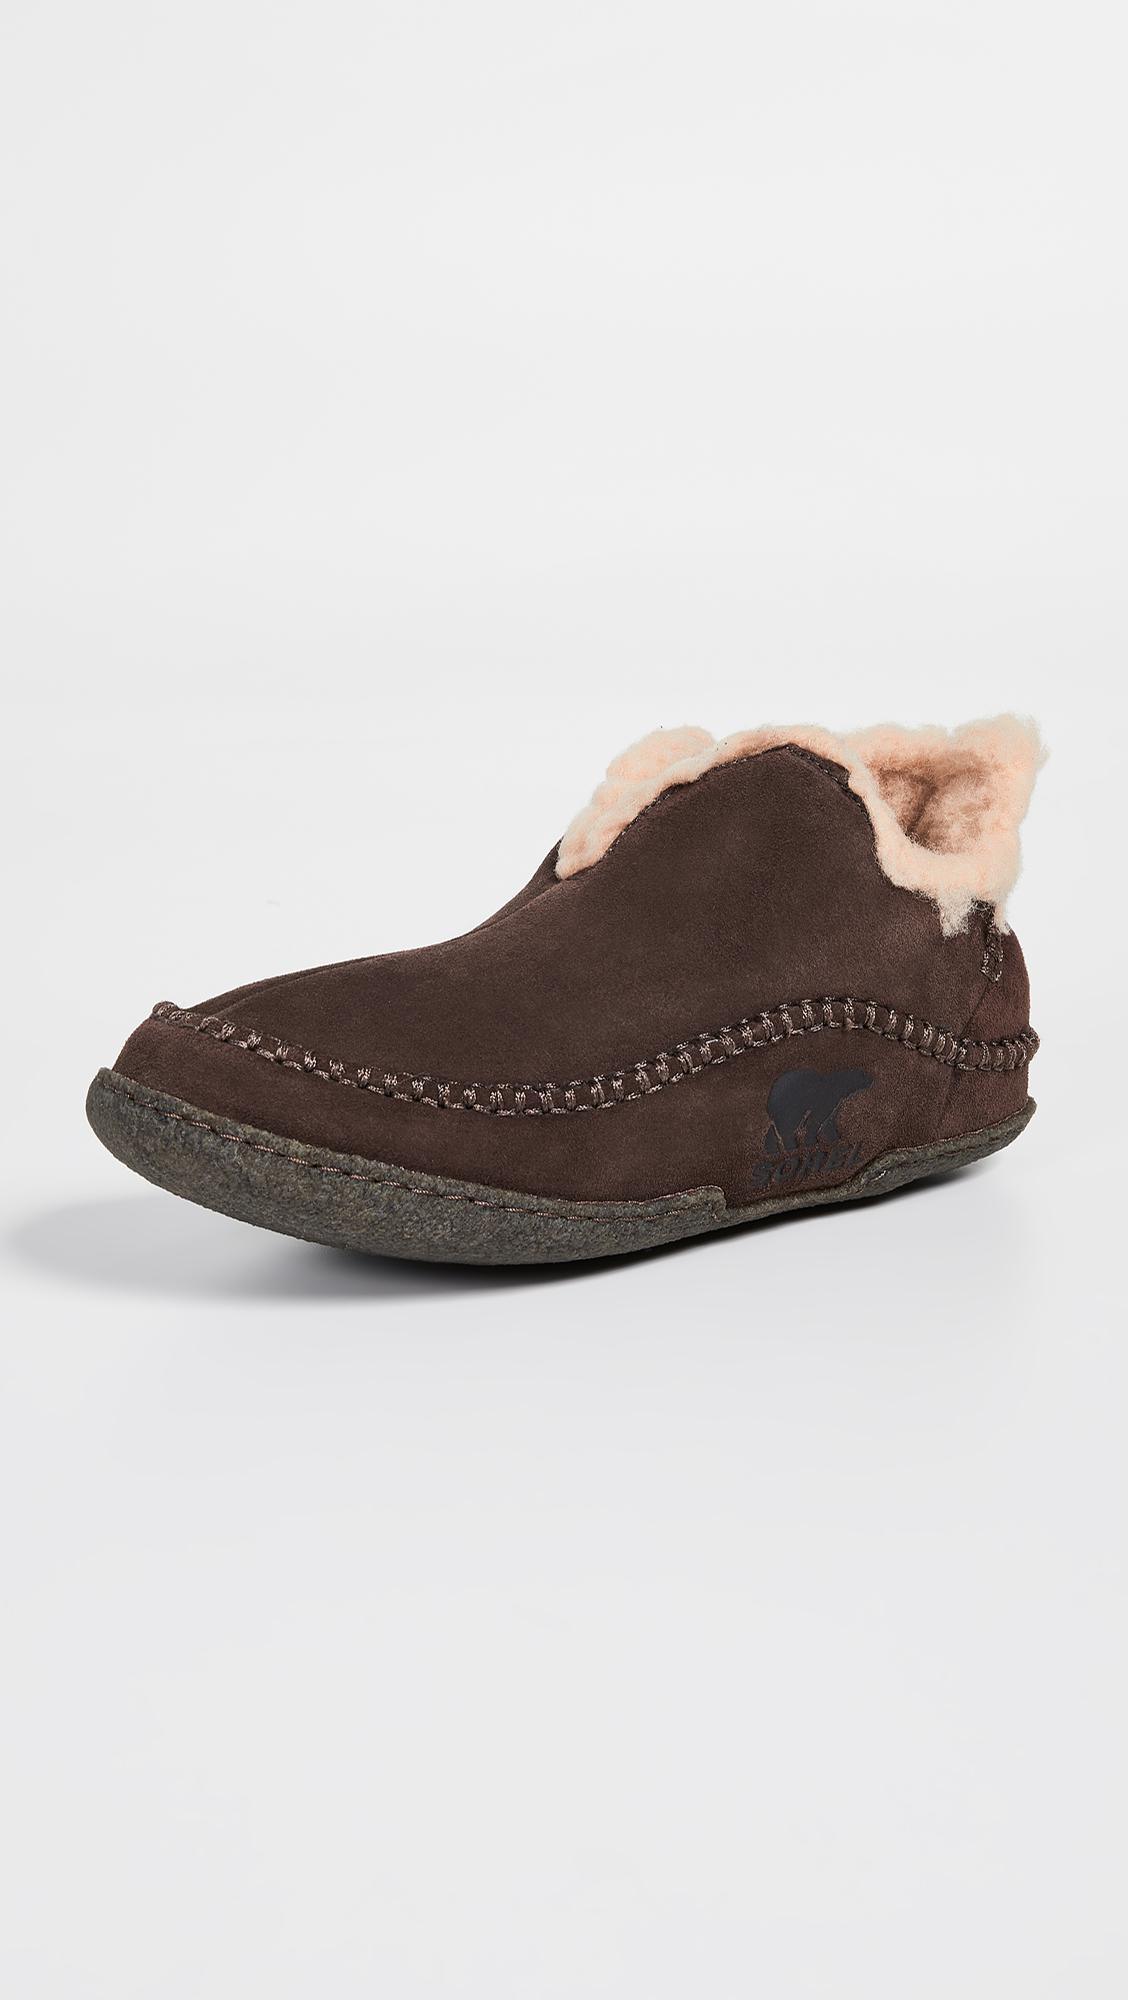 591a99315868 Sorel Manawan Slippers in Brown for Men - Lyst